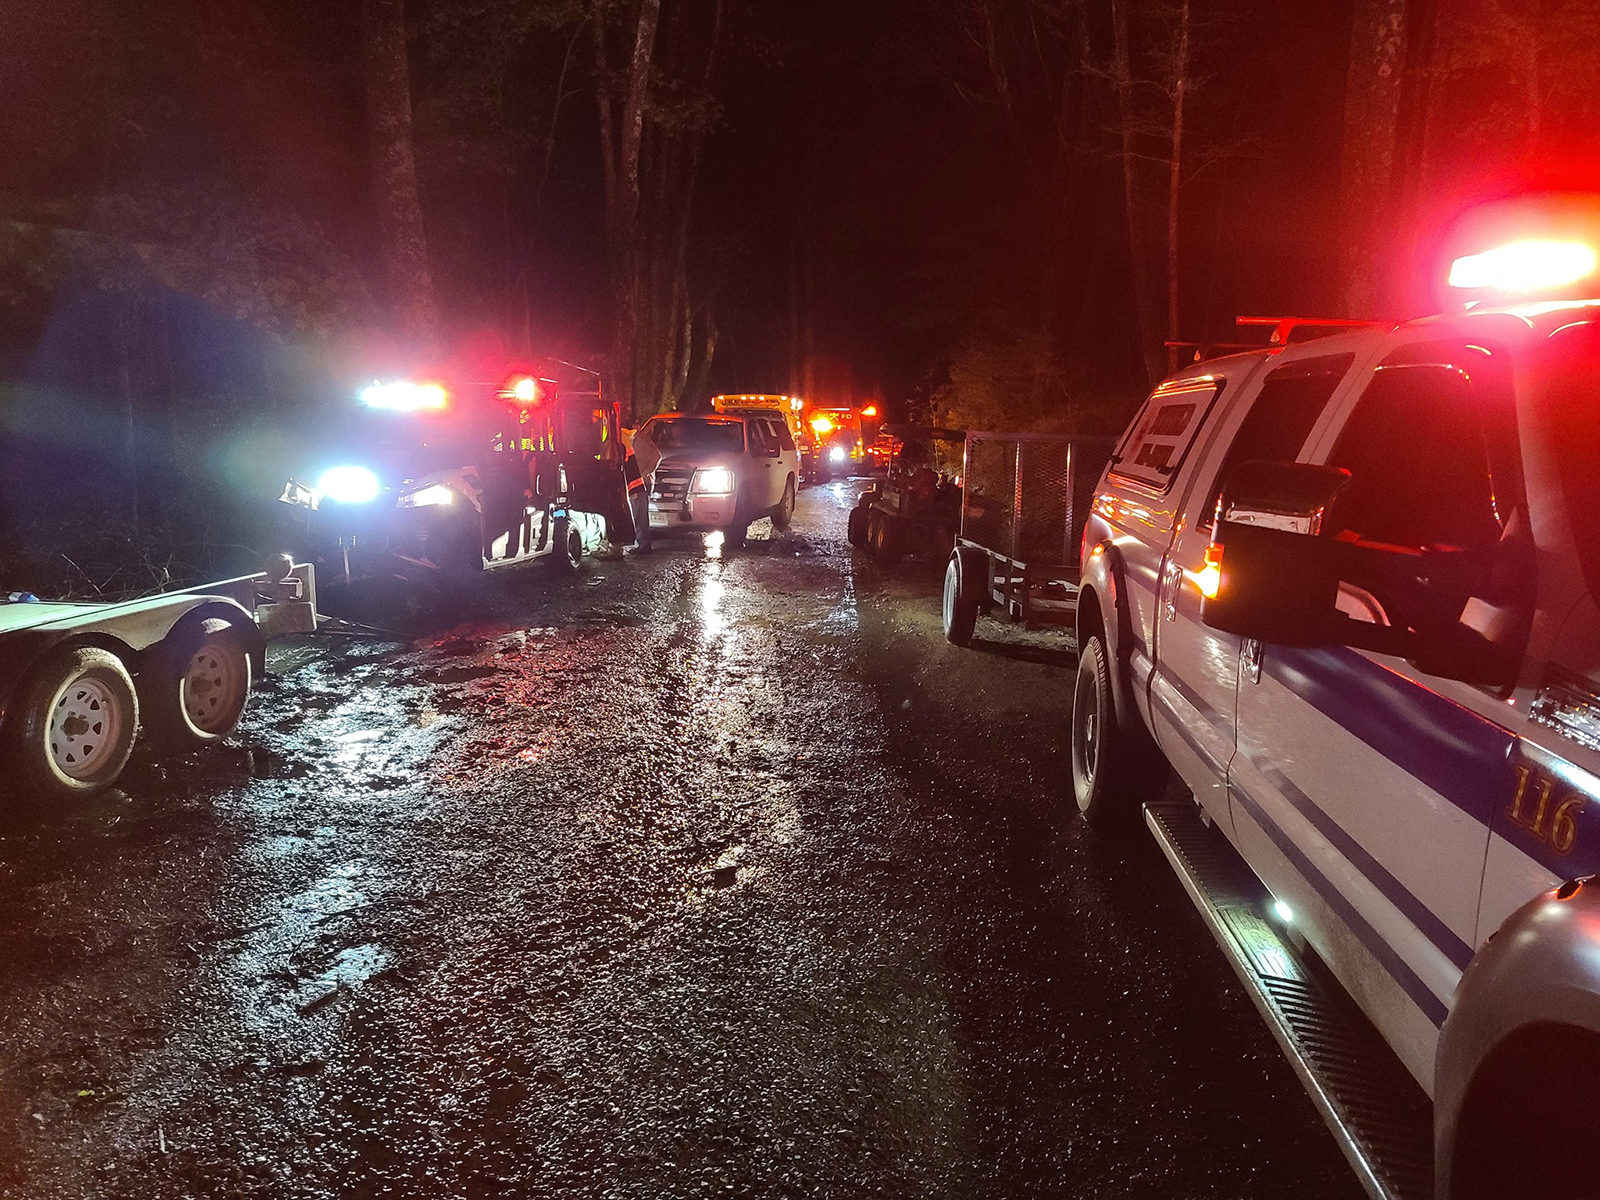 20 hikers are rescued from the Devil's Bathtub in Virginia after flash flooding